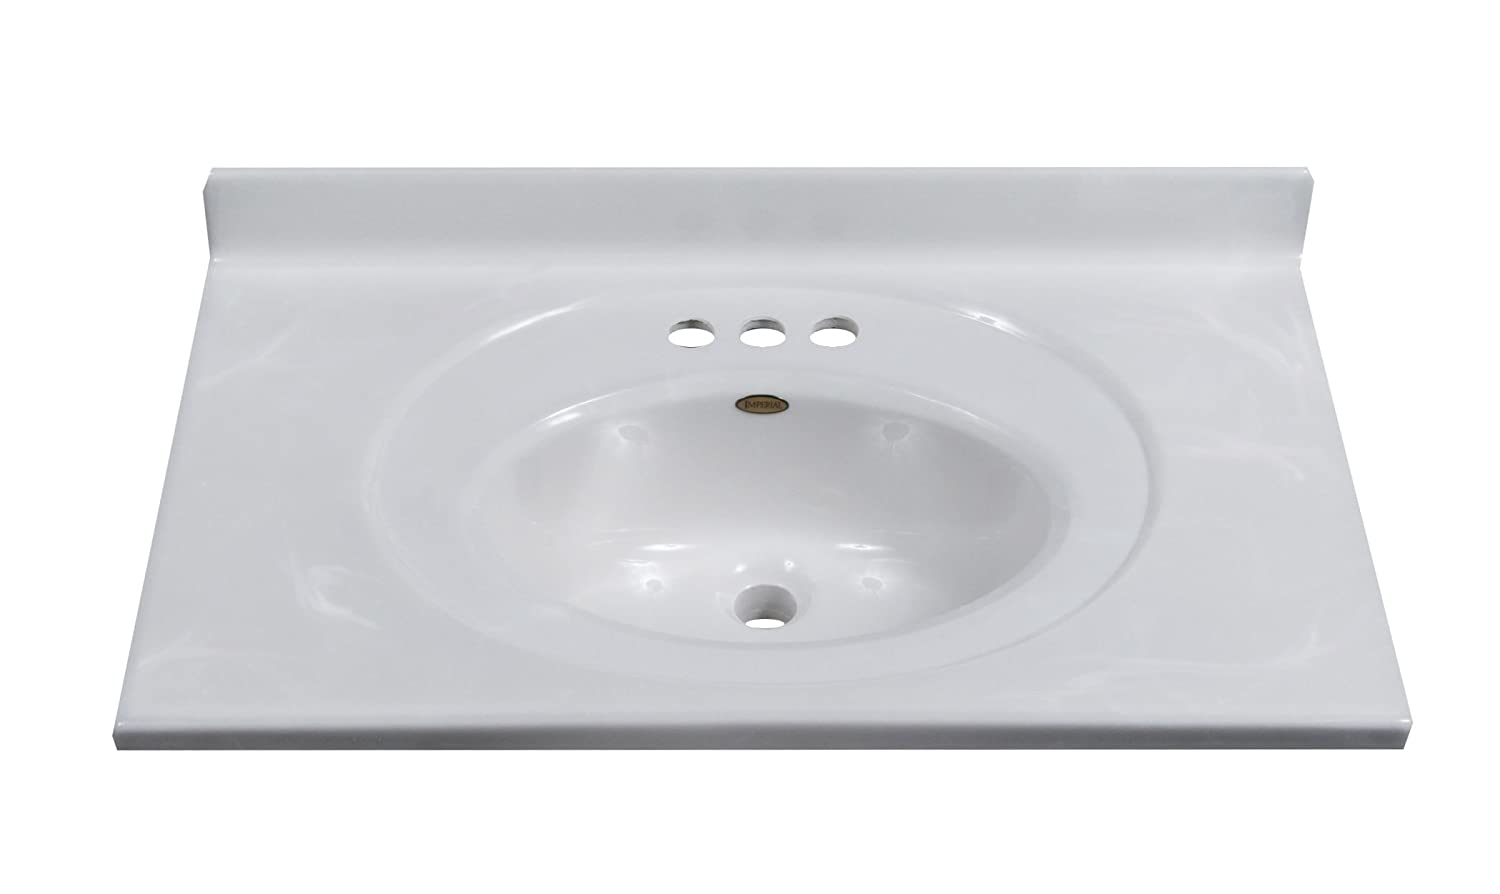 Imperial FS3119W Bathroom Vanity Top With Recessed Center Oval Bowl, White  On White Gloss Finish, 31 Inch Wide By 19 Inch Deep   Vanity Sinks    Amazon.com